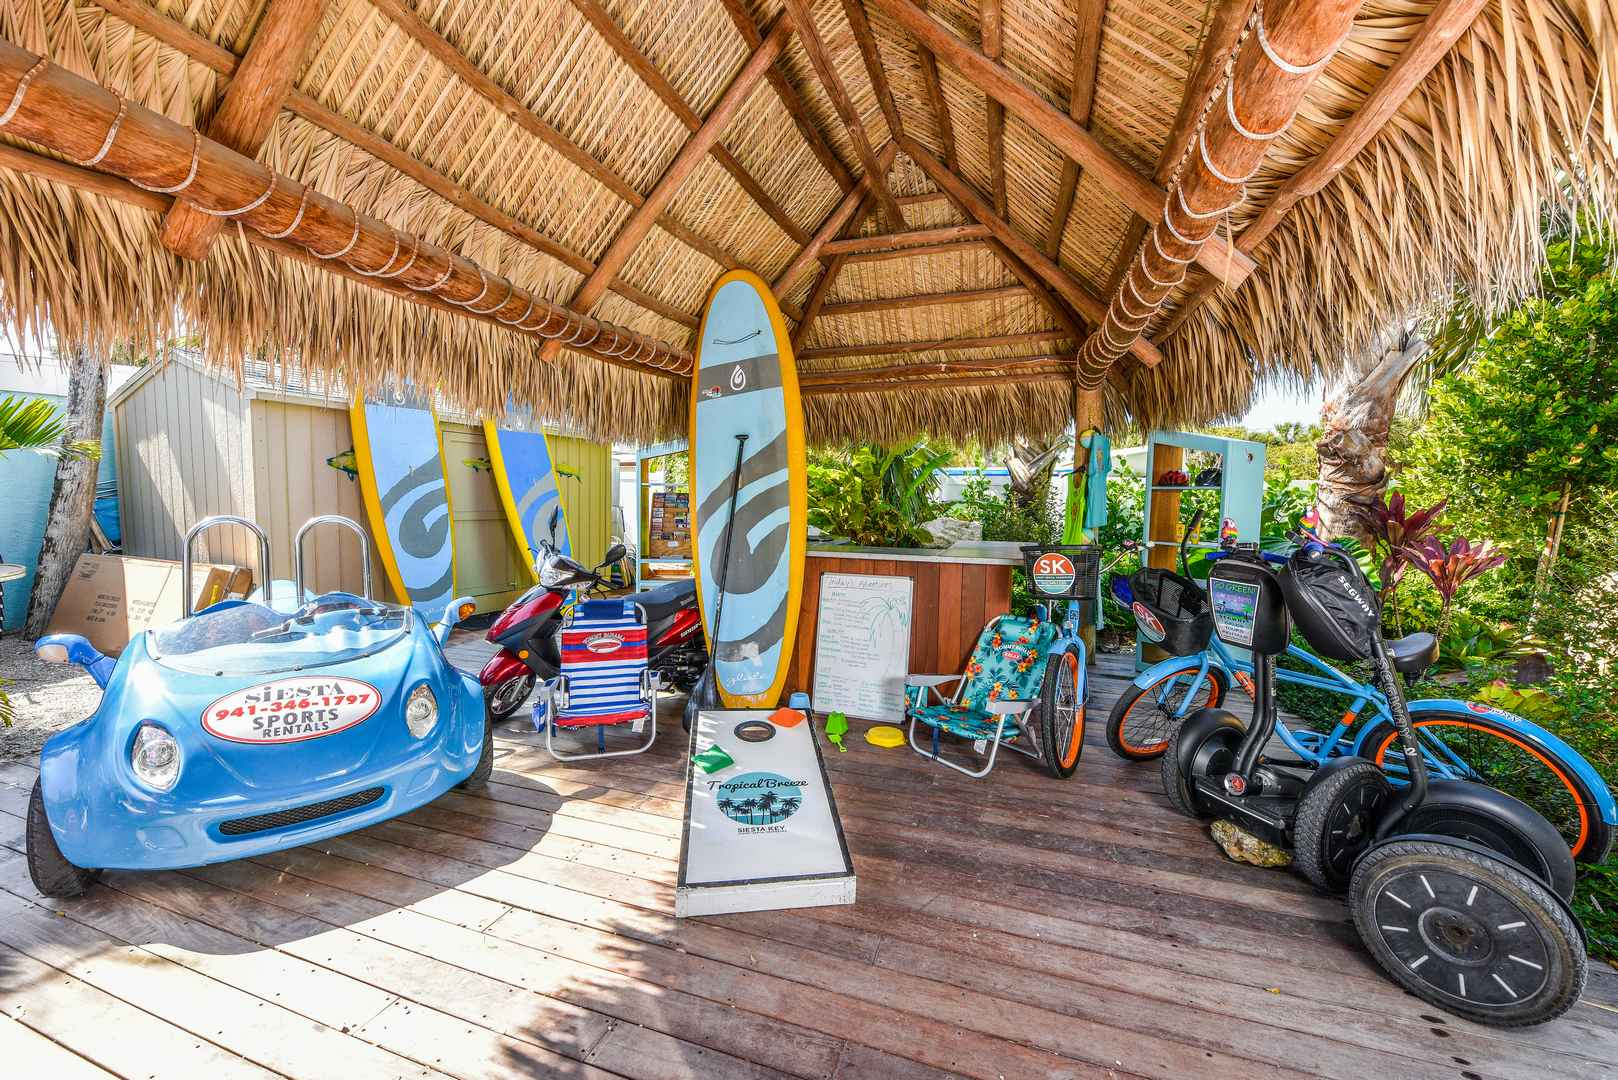 Rentals, Tours, and more at Adventure Tiki